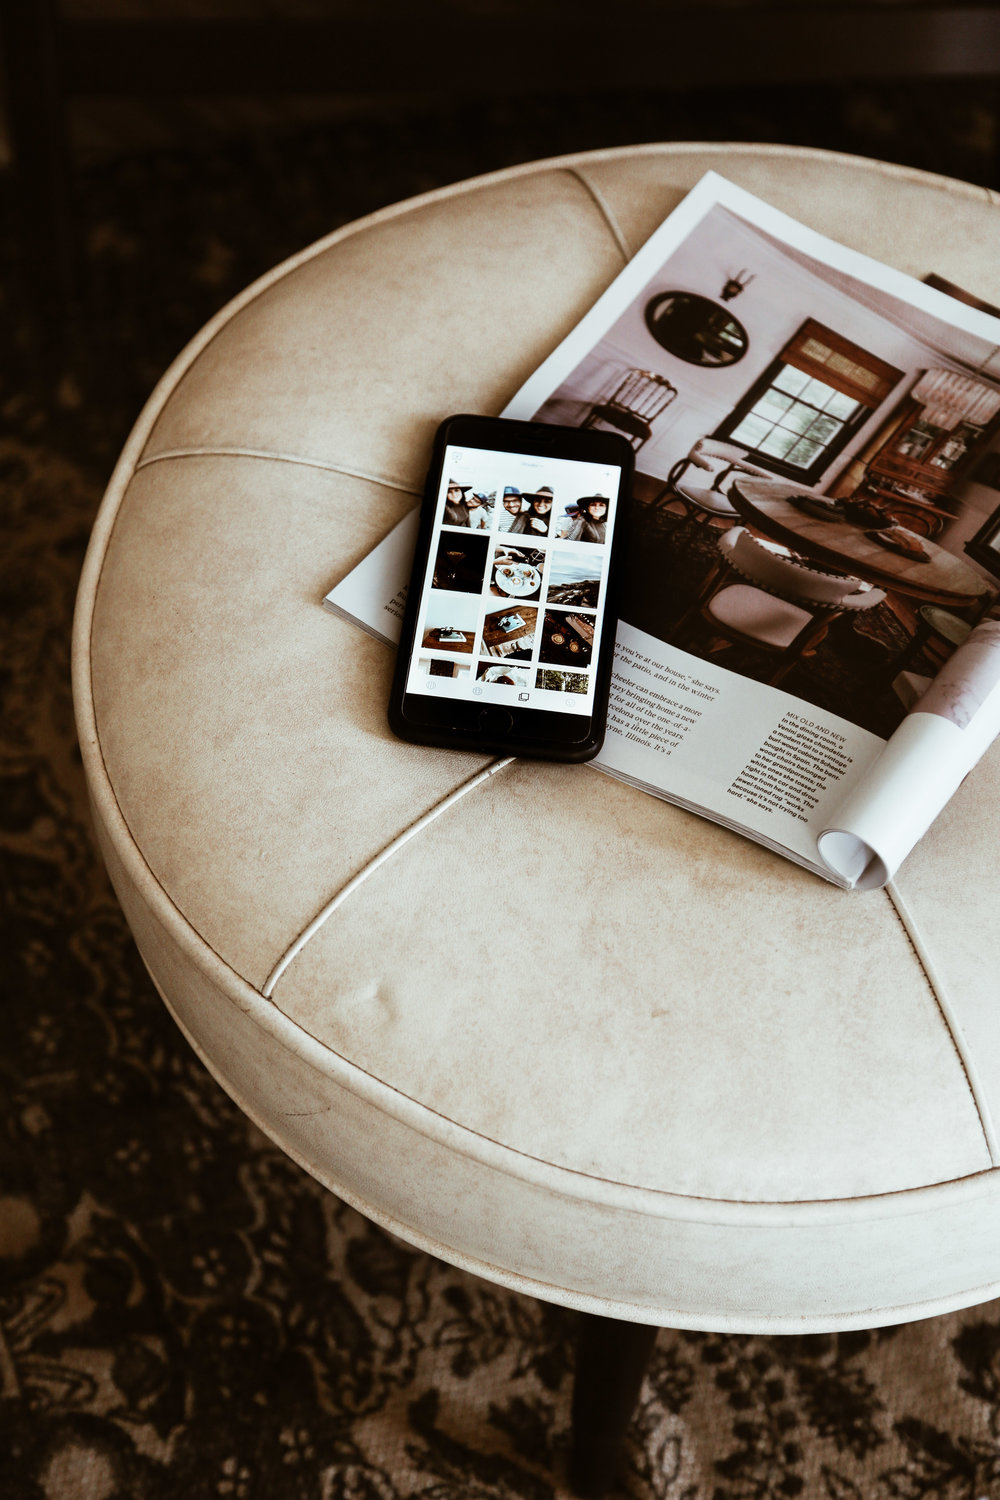 best apps for phone photography0.jpg